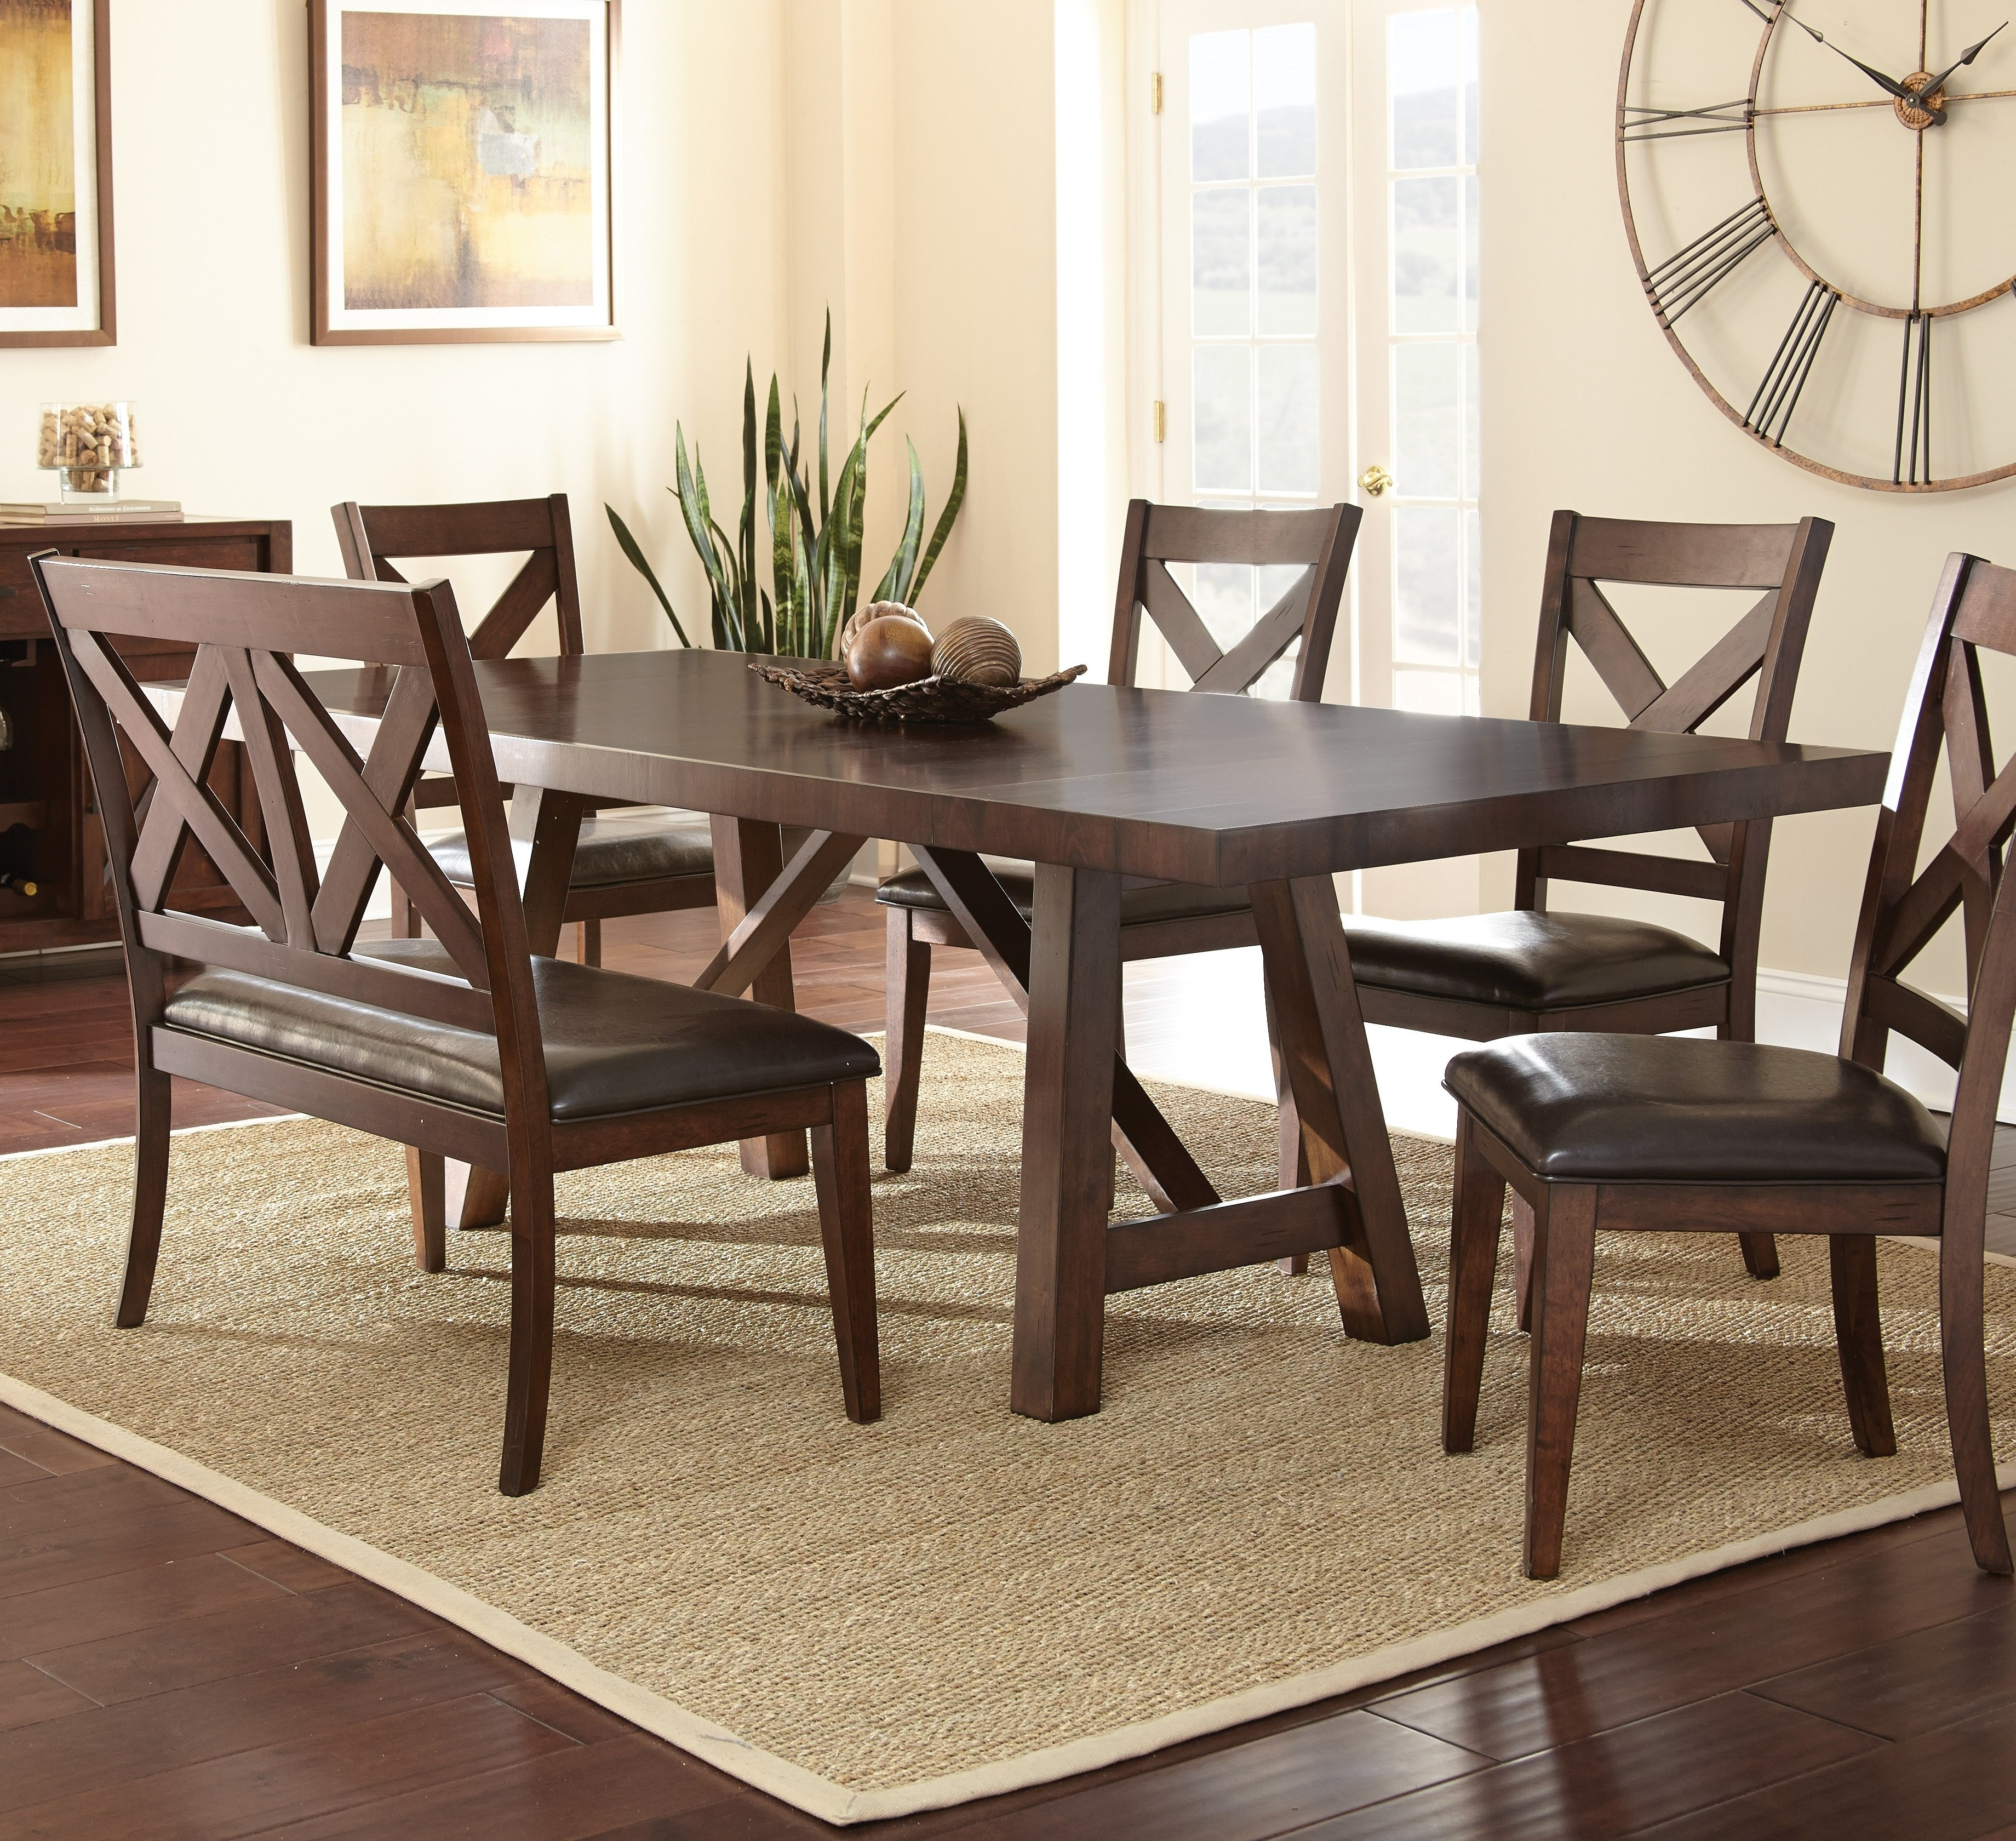 Alcott Hill Spier Place Extendable Dining Table | Wayfair Inside Most Up To Date Valencia 72 Inch Extension Trestle Dining Tables (Image 7 of 20)